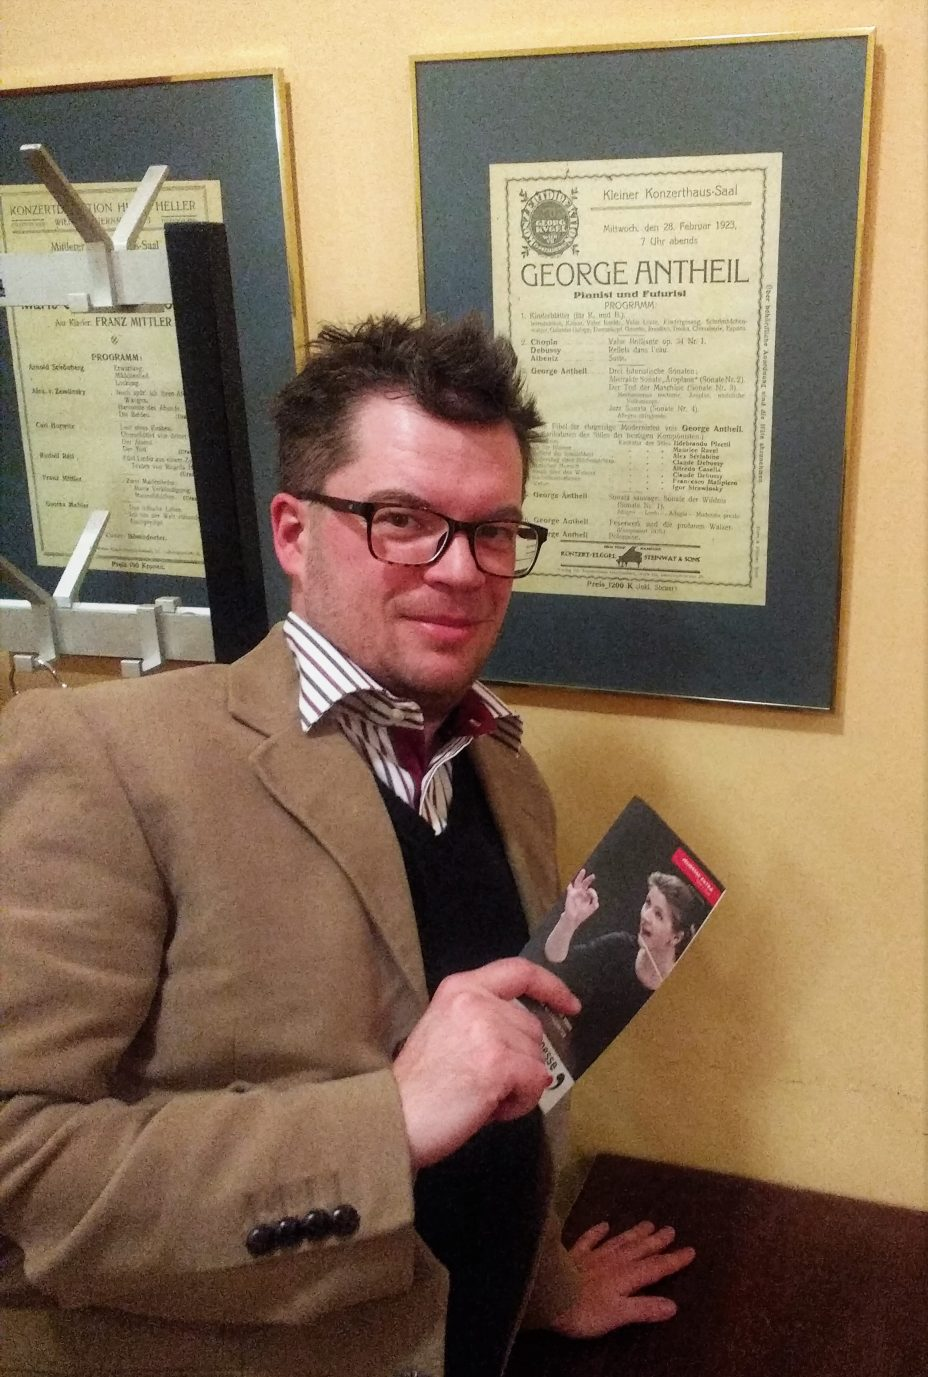 The author standing in front of the programme of a 1923 Antheil recital